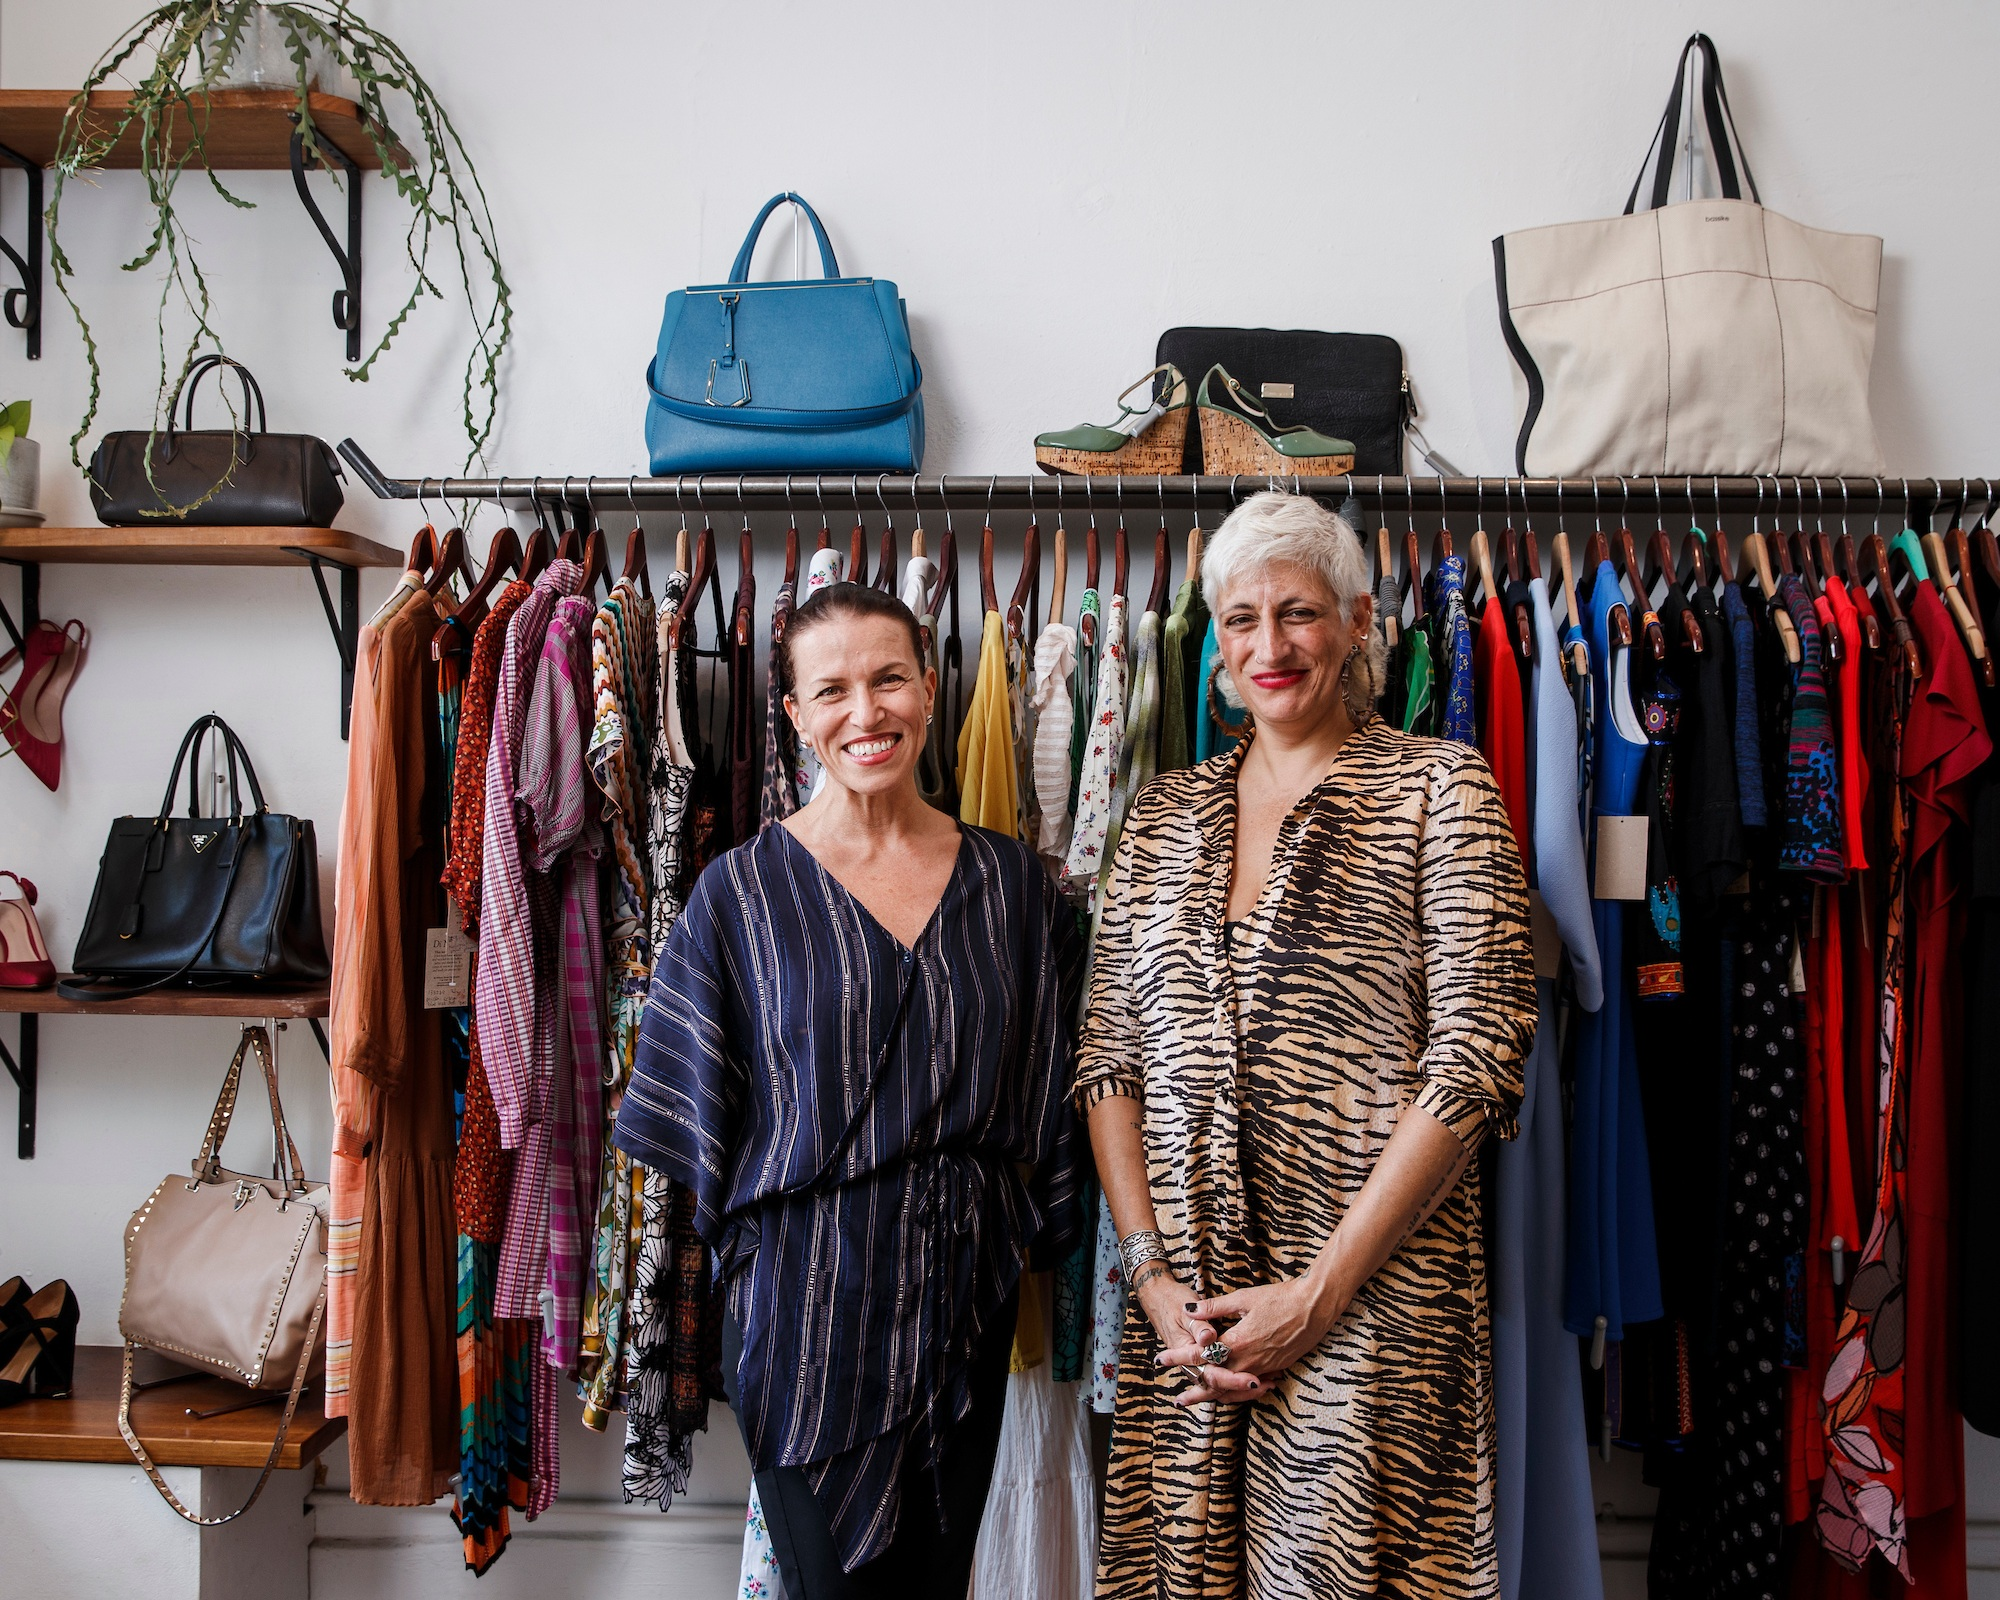 DI NUOVO - 92 WILLIAM STREETThe ideal destination shop for upscale, designer recycled fashion. Featuring a range of ladies clothing and accessories in mint condition with imported and top local high end labels.